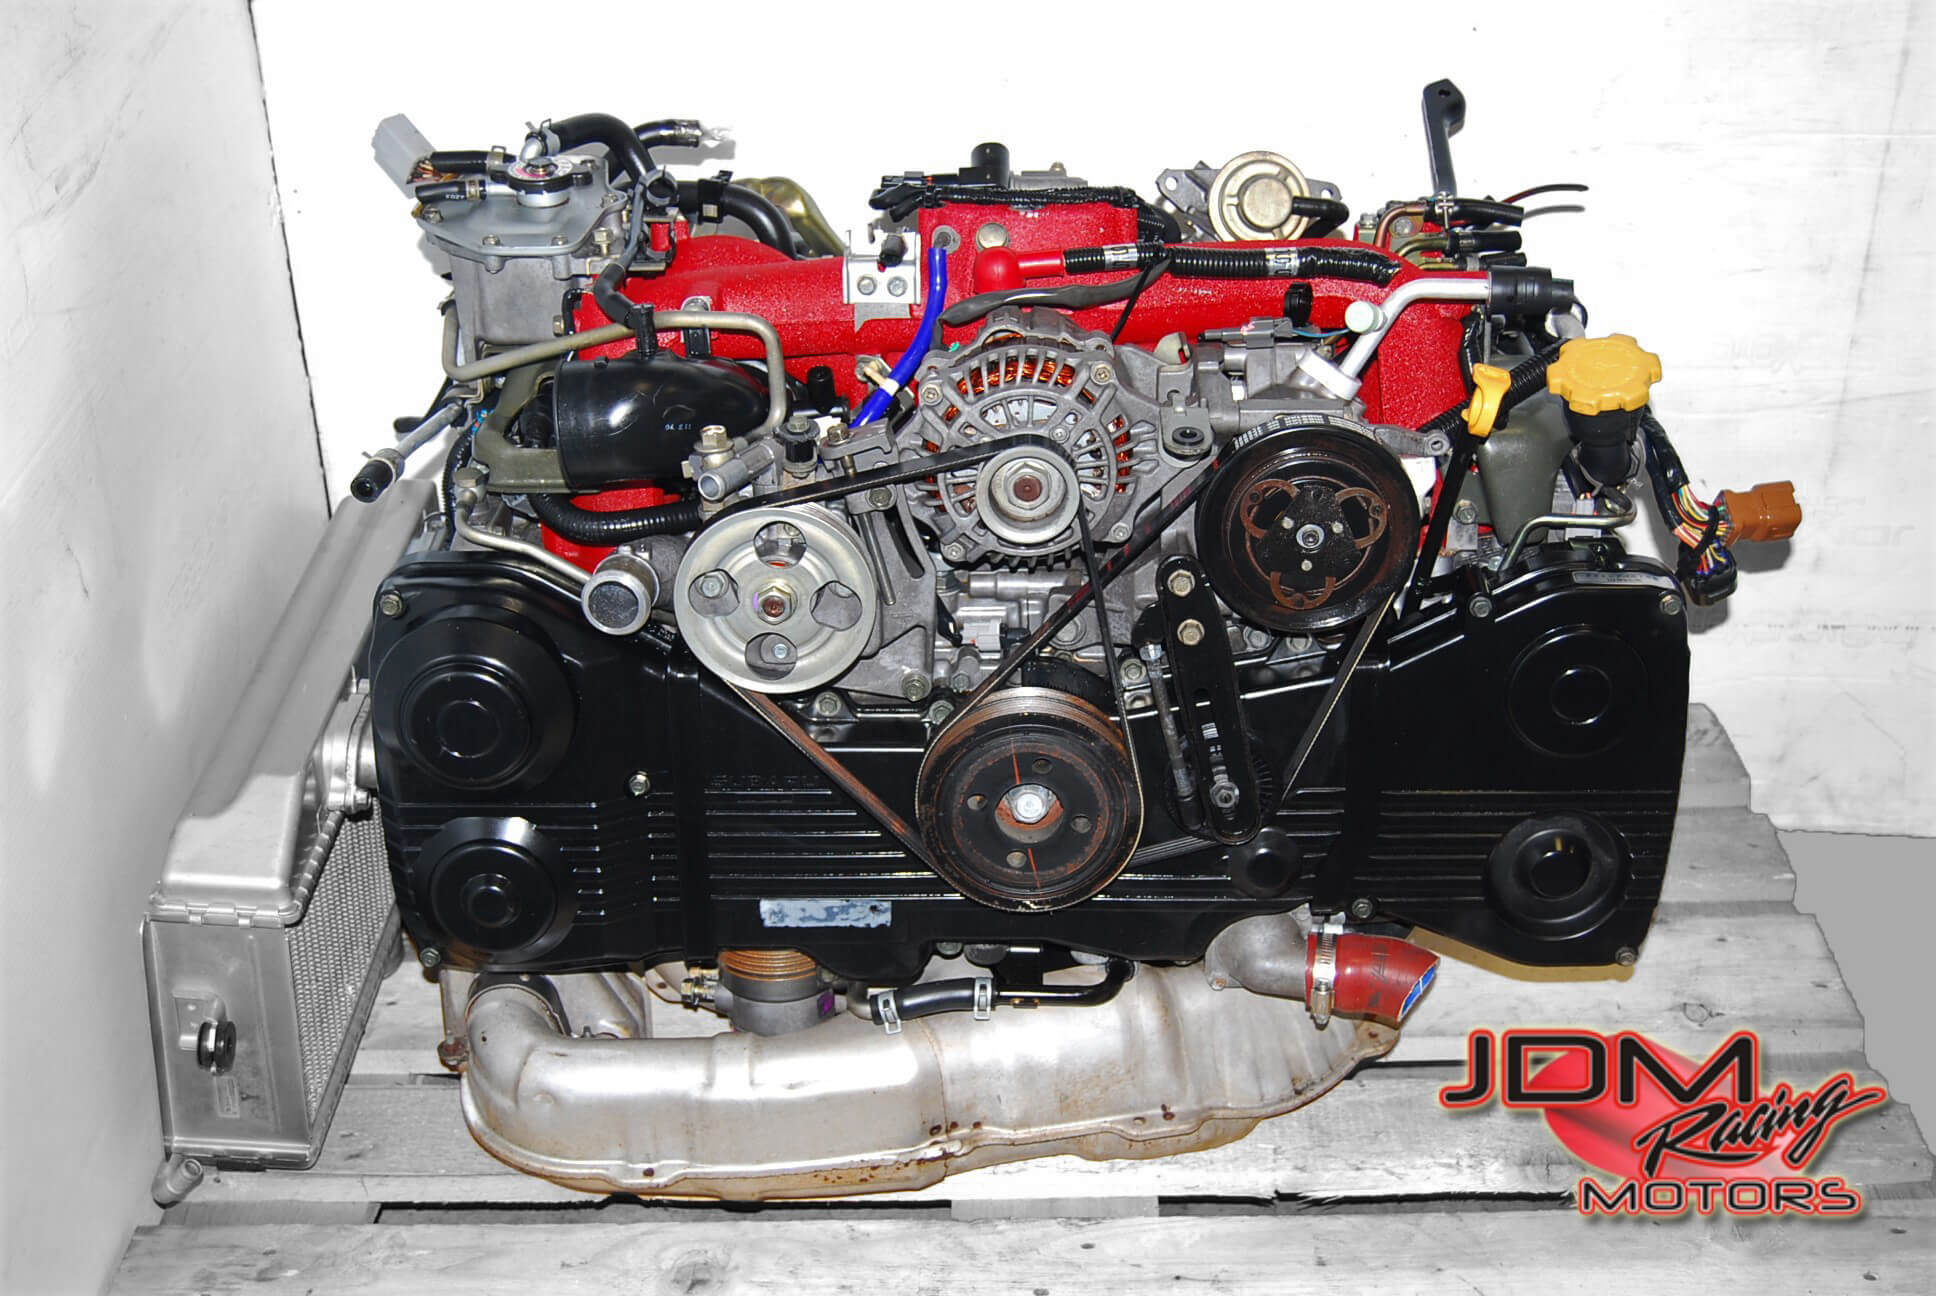 subaru jdm engines parts jdm racing motors rh jdmracingmotors com Subaru  Boxer Engine Diagram Subaru Forester